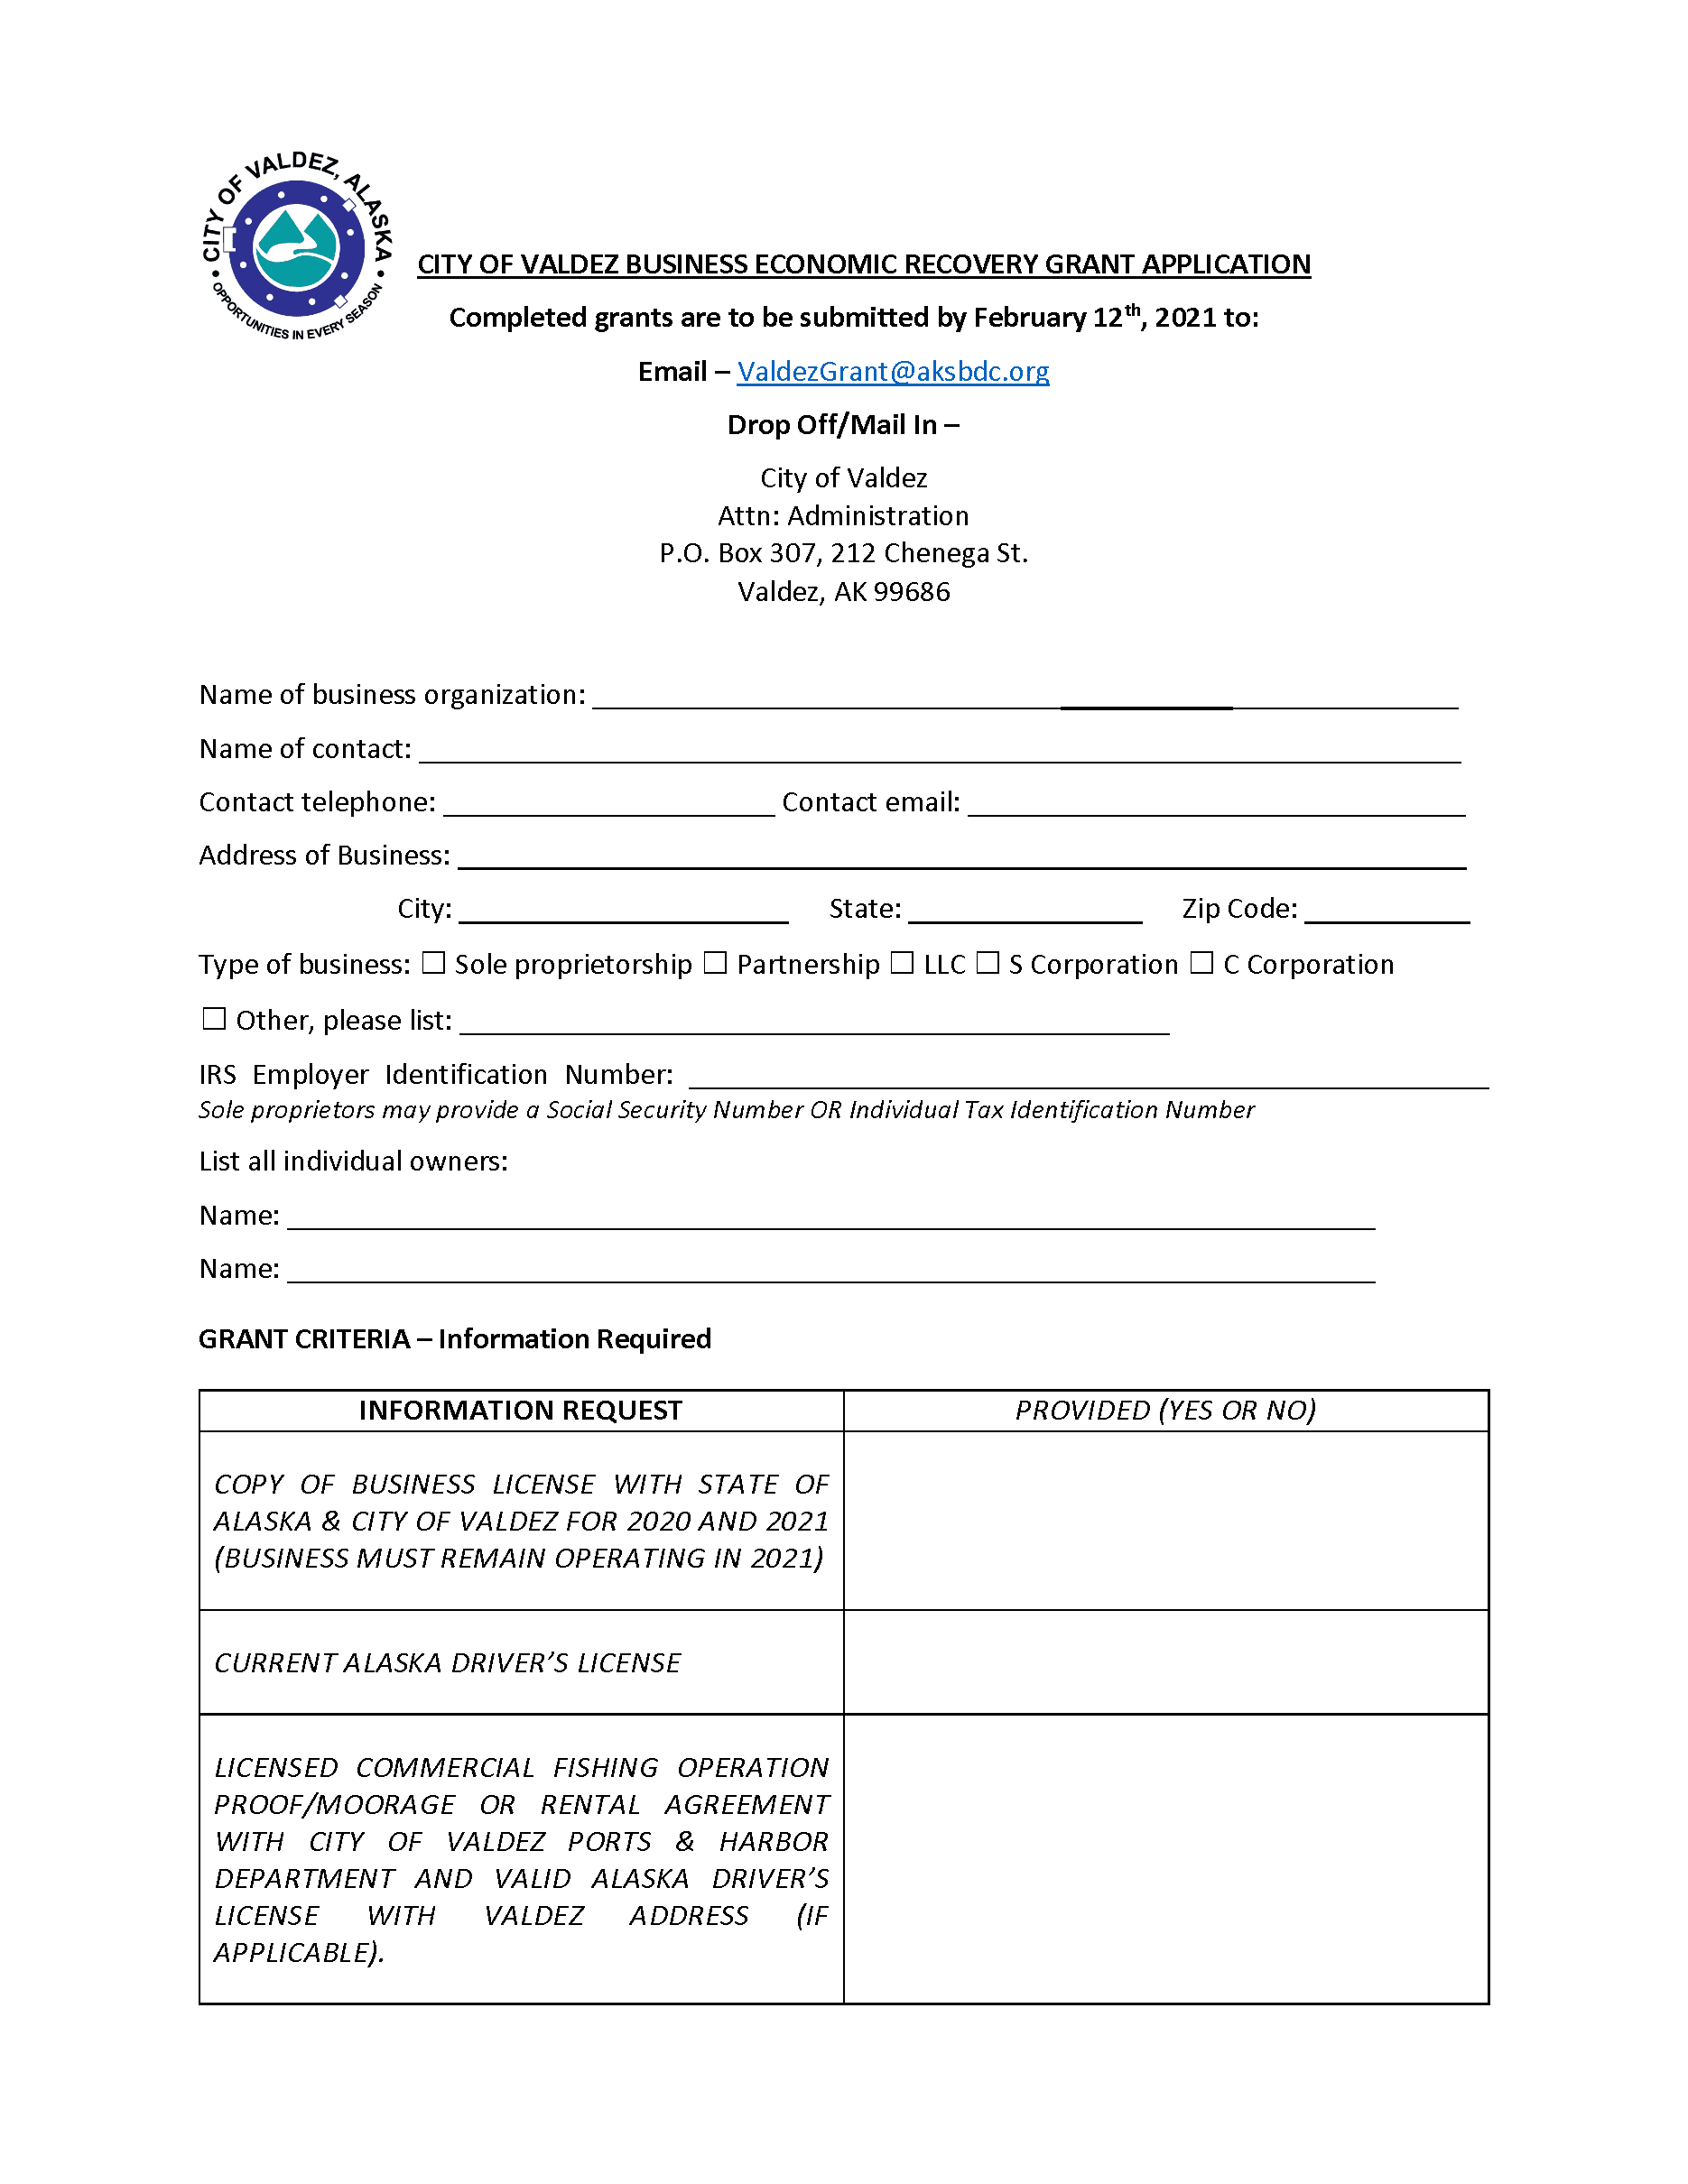 City of Valdez Business Economic Recovery Grant Application 2021